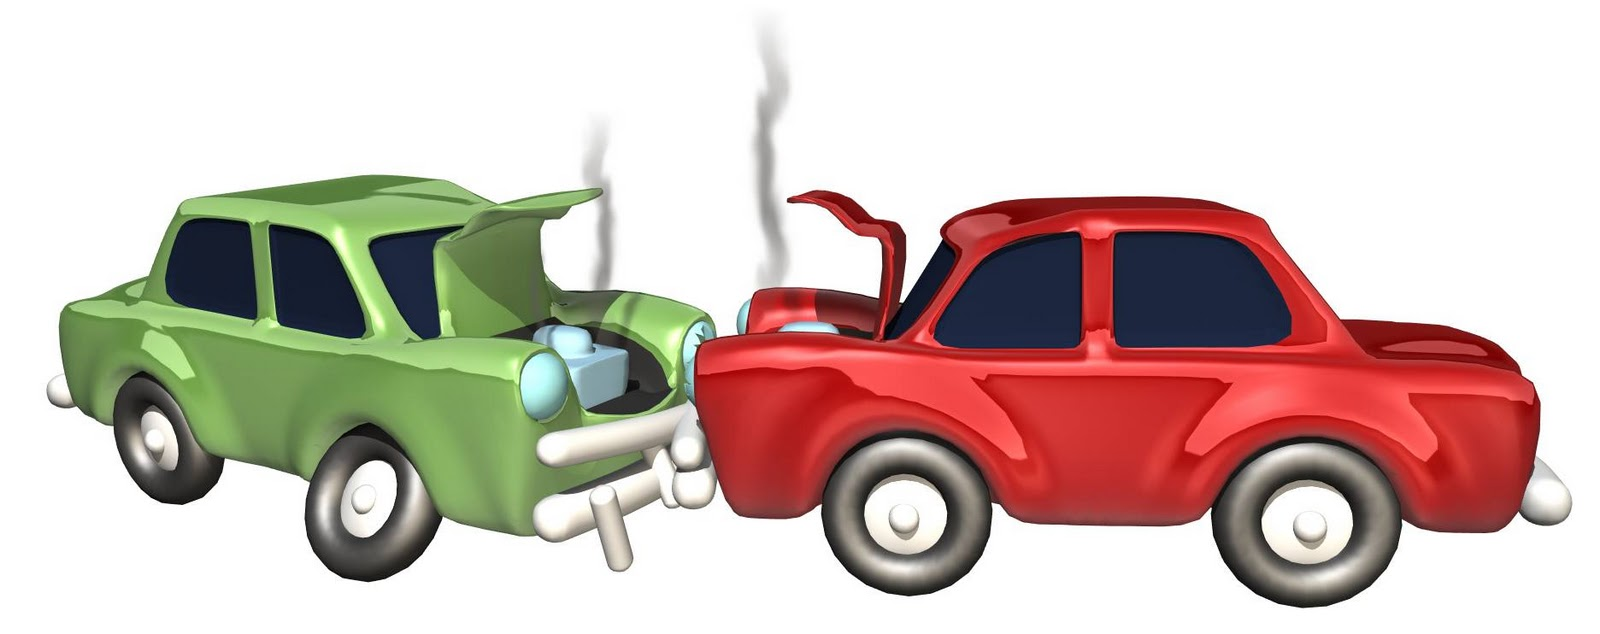 Wrecked vehicles with title clipart jpg freeuse download Free Junk Car Cliparts, Download Free Clip Art, Free Clip ... jpg freeuse download